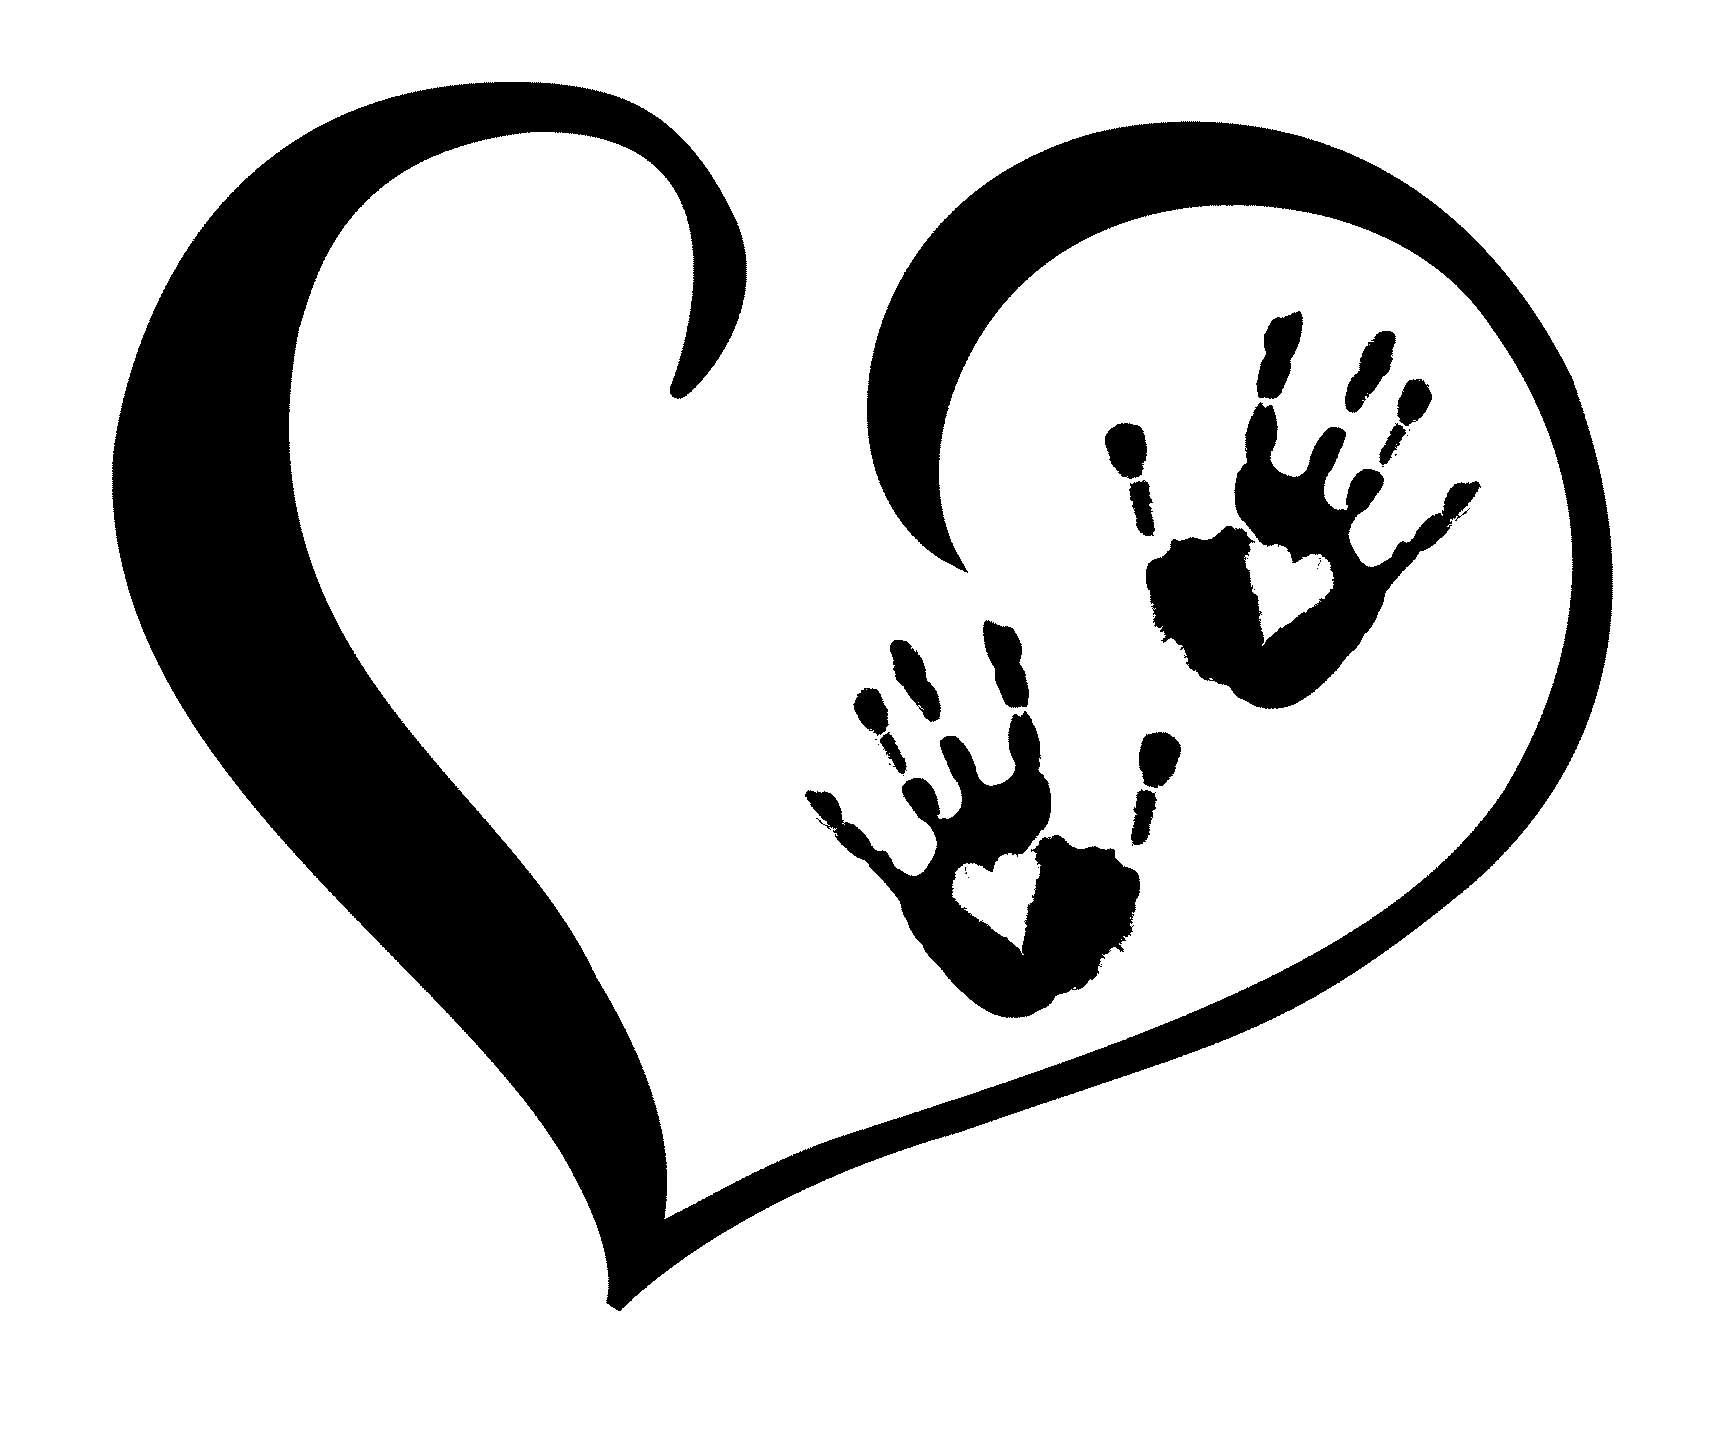 Healing heart clipart clipart free download Free Handprint Heart Cliparts, Download Free Clip Art, Free Clip Art ... clipart free download